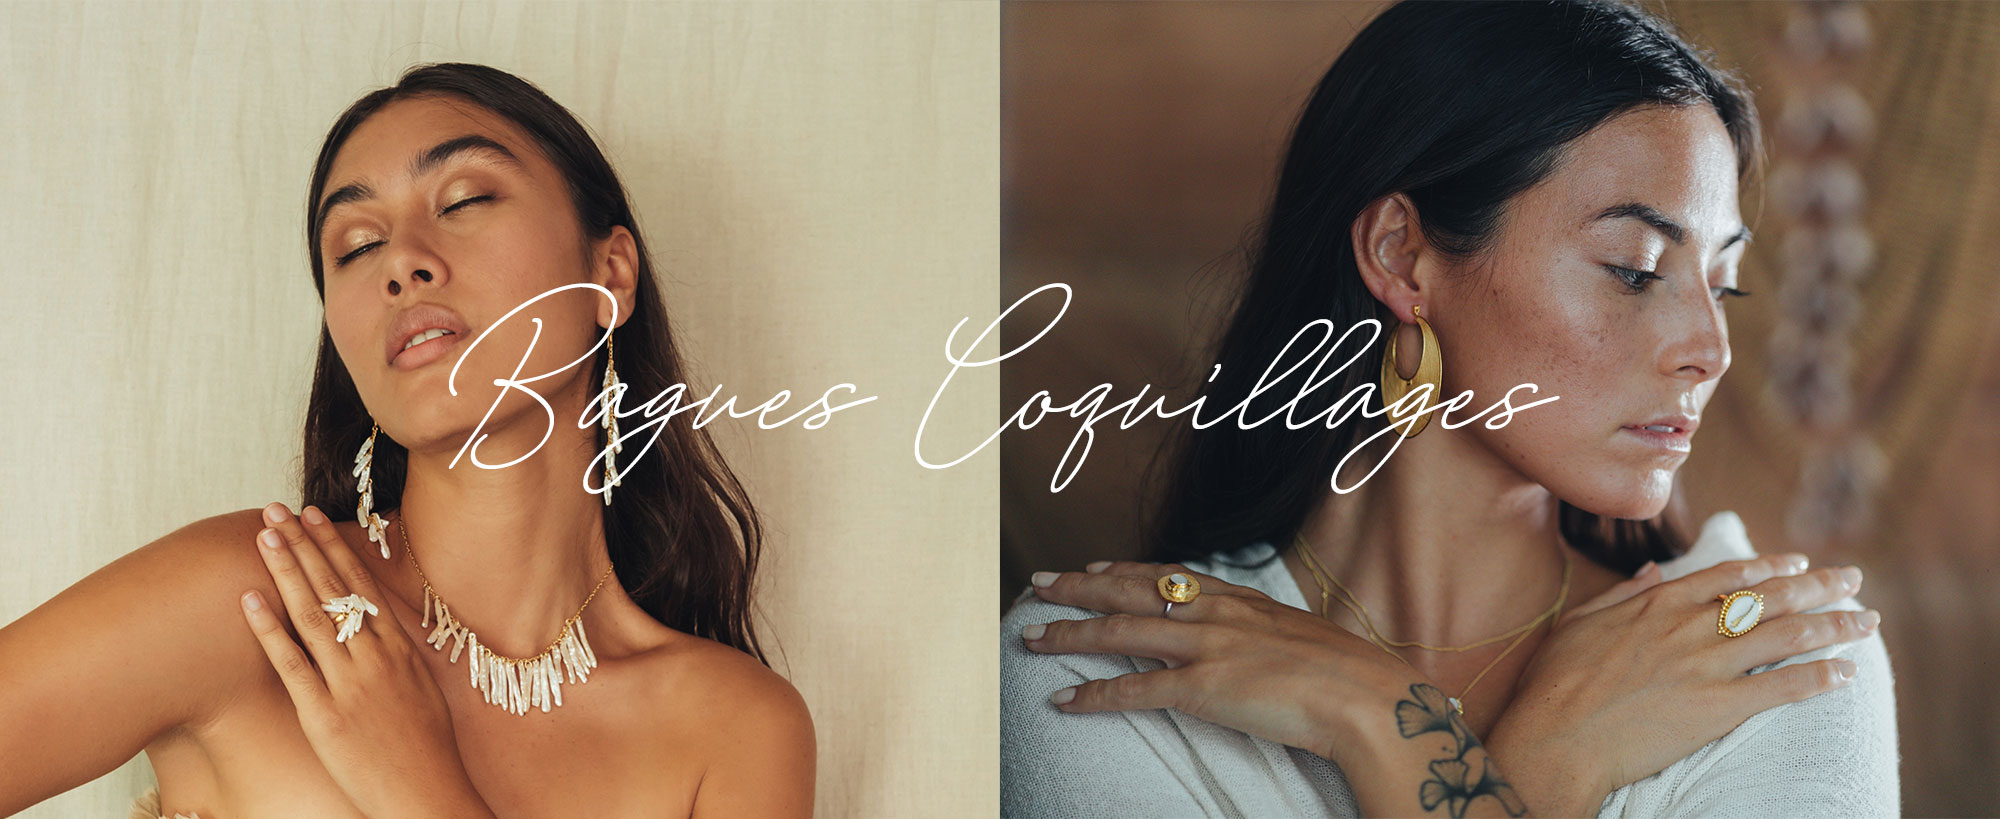 bagues-coquillages-femme-slid